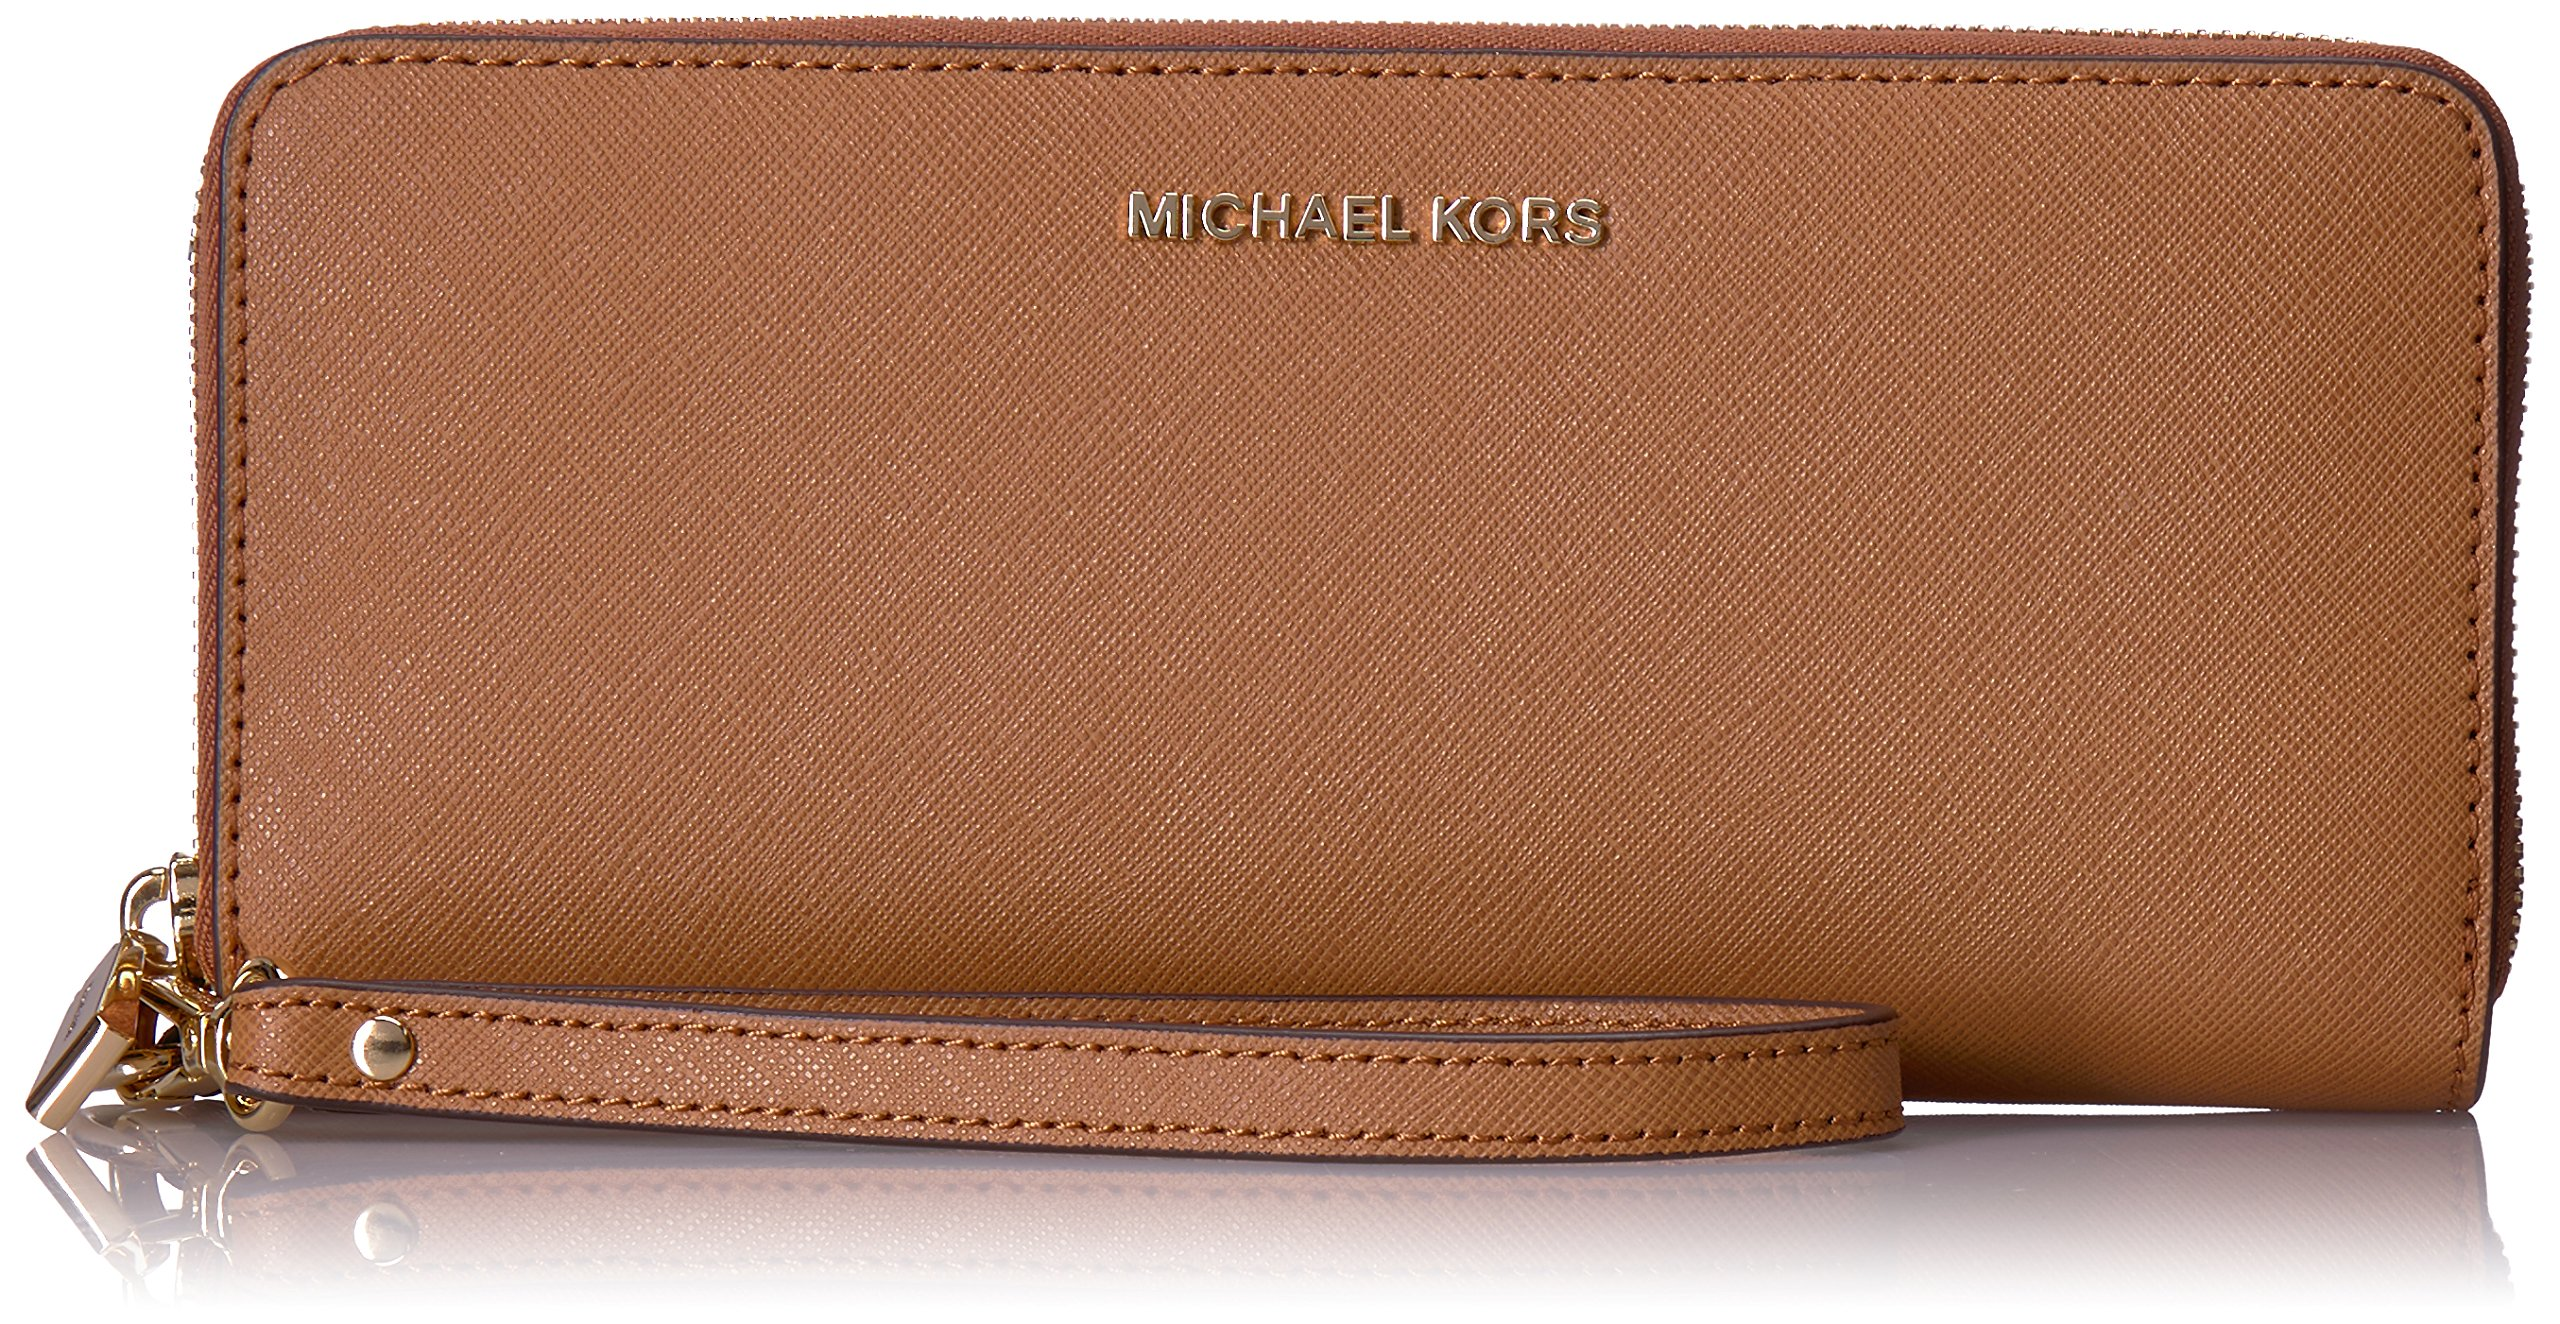 Michael Kors Women's Jet Set Travel Leather Continental Wallet Wristlet - Acorn by Michael Kors